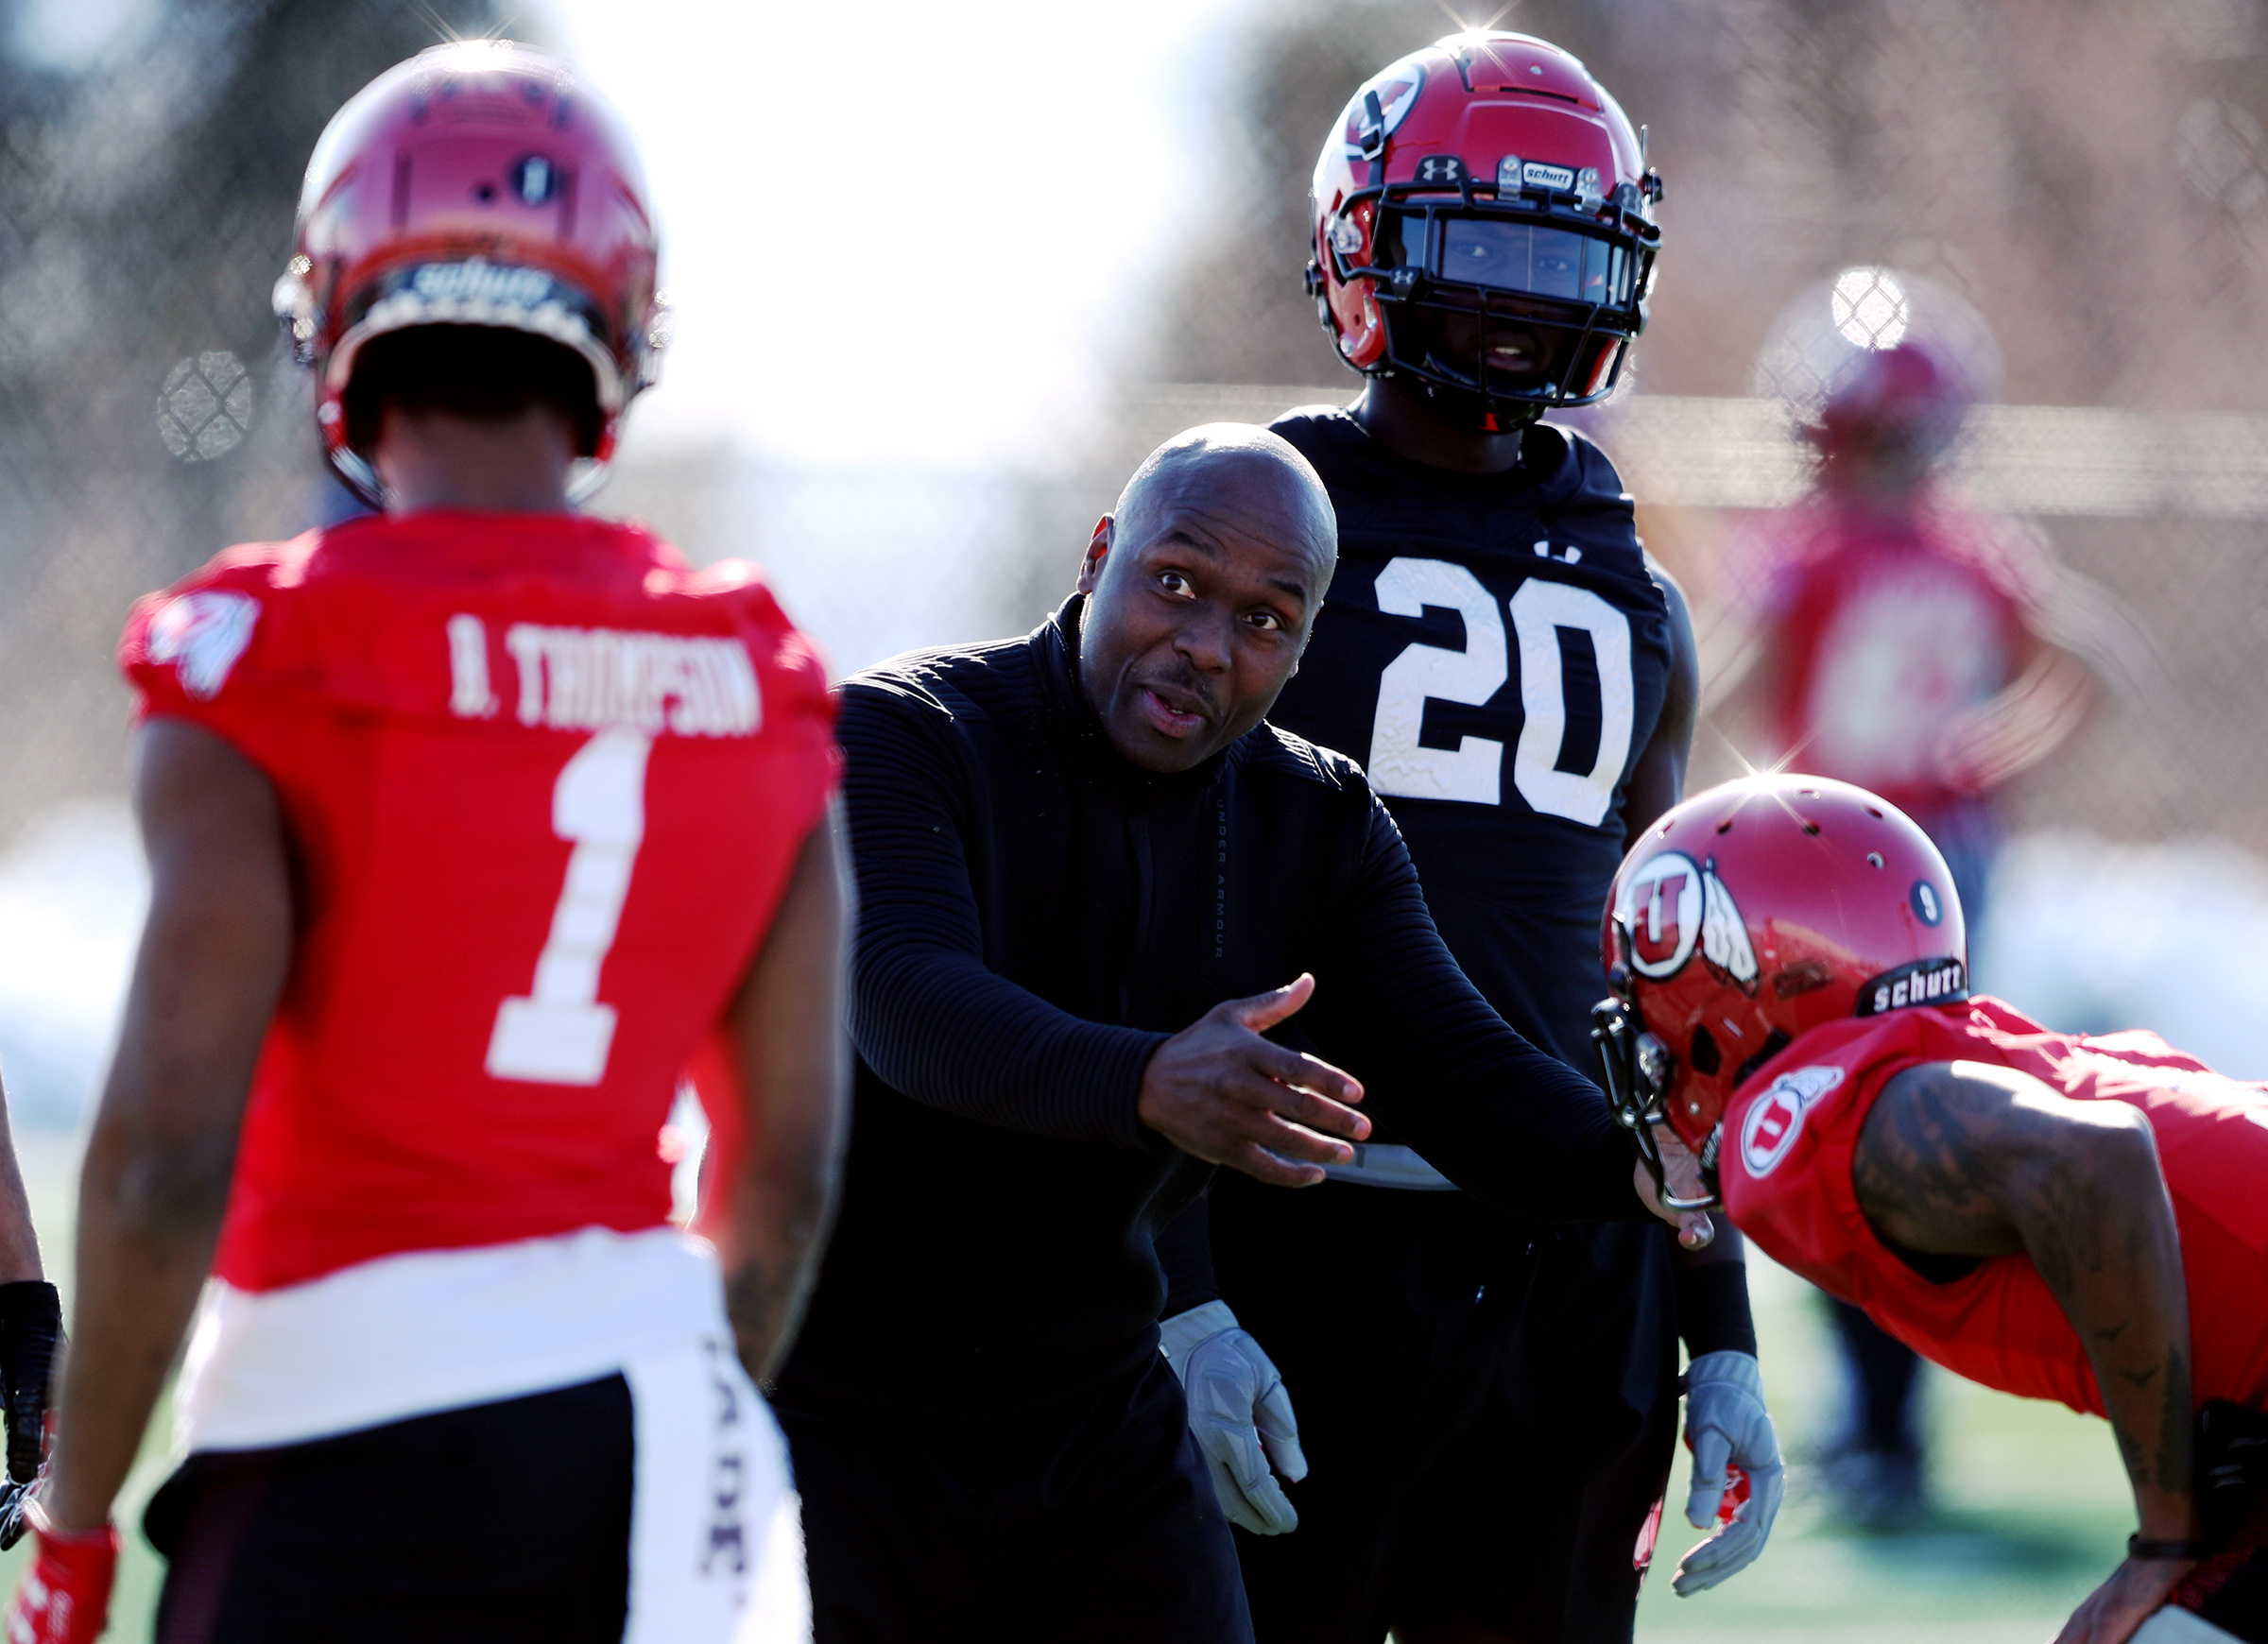 Utah cornerbacks coach/special teams coordinator Sharrieff Shah works with his players as the University of Utah football team opens spring camp in Salt Lake City on Monday, March 2, 2020.